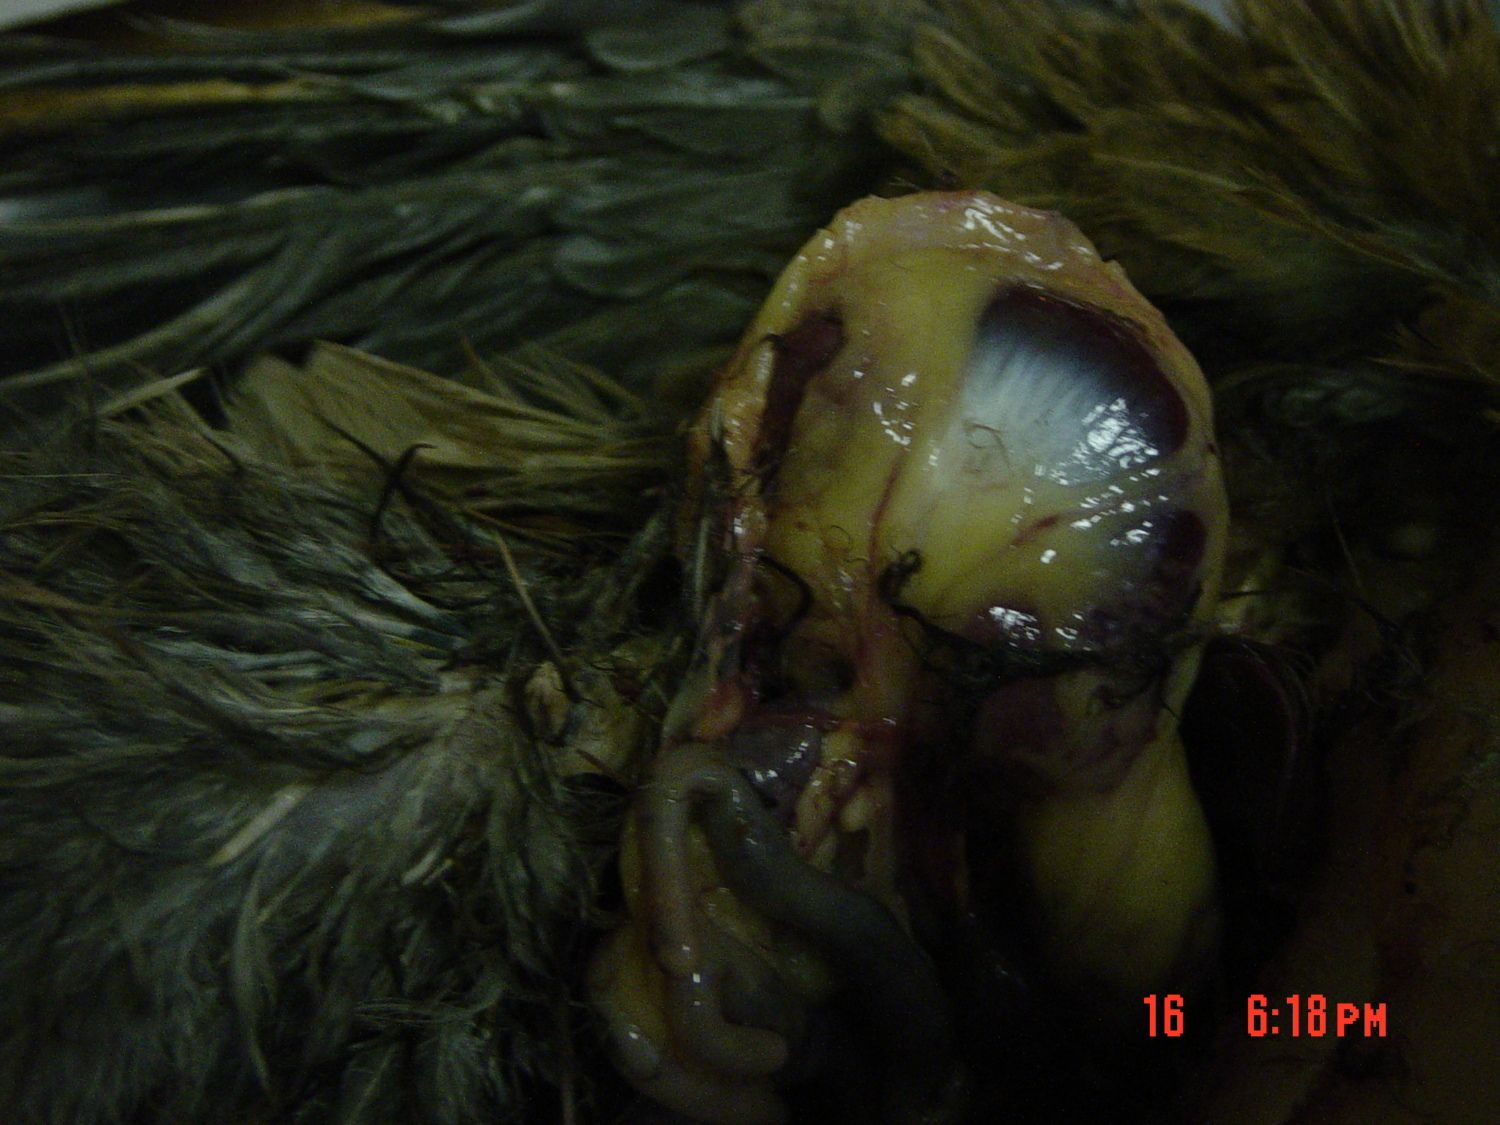 Lobzi's photos in Necropsy of pullet revealed gizzard encased in fat